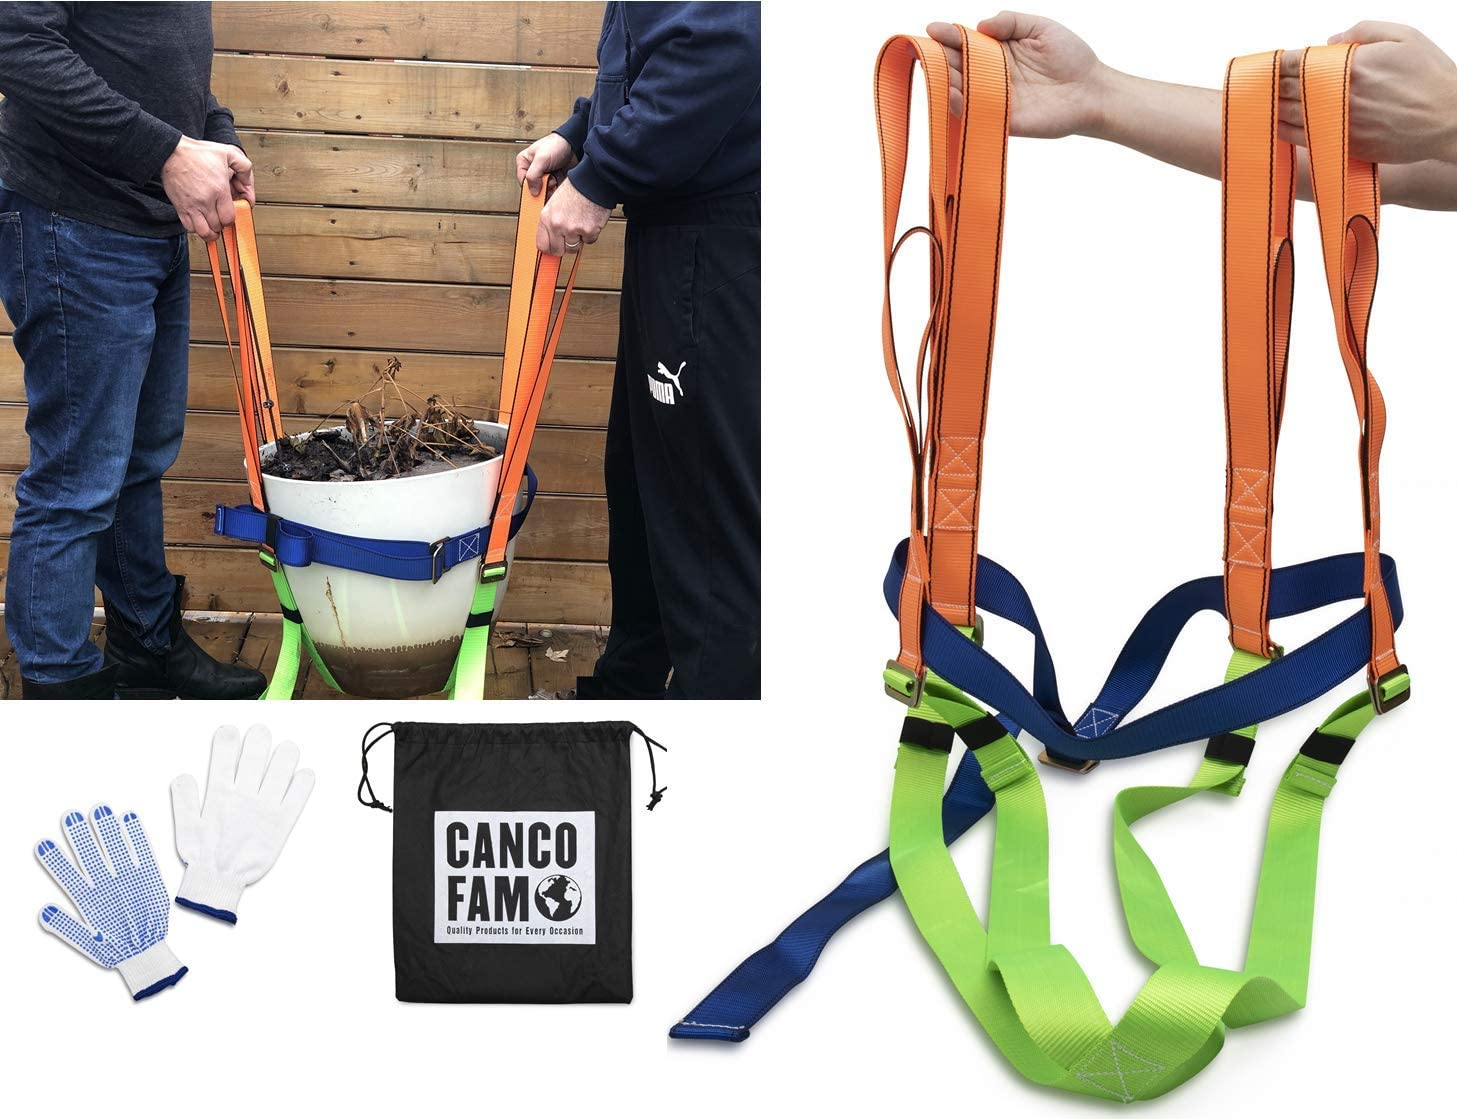 CancoFam Plant Pot Mover – Garden New product! New type 55% OFF - 2 Dolly Tool Person Lifting